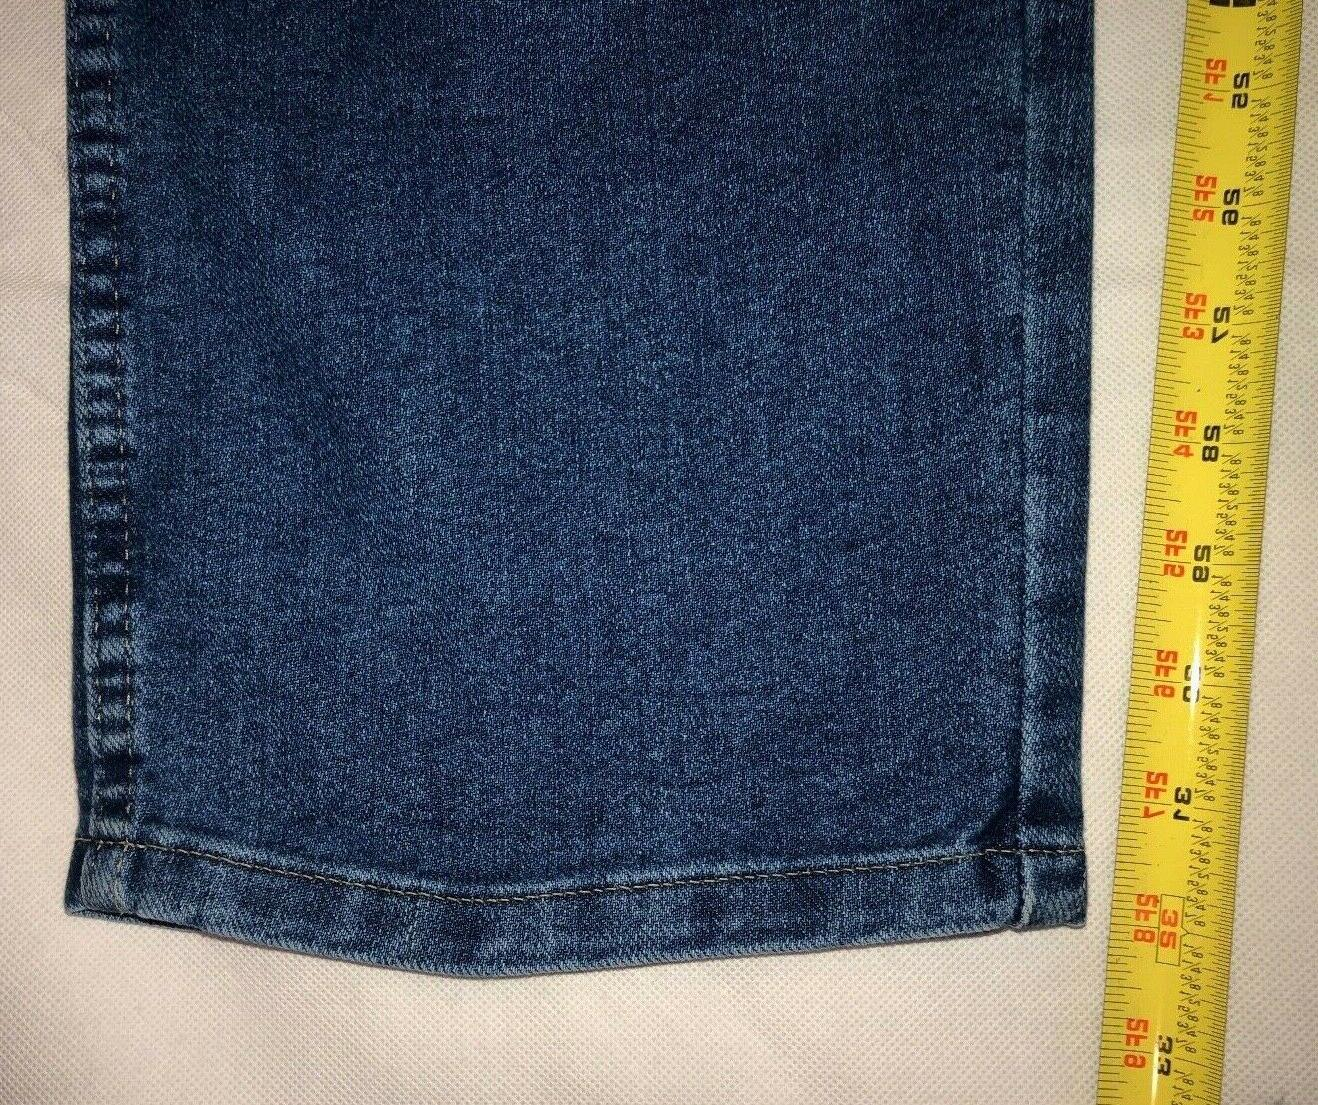 Wrangler Men's Relaxed Stretch Jeans Size 38 New Tags